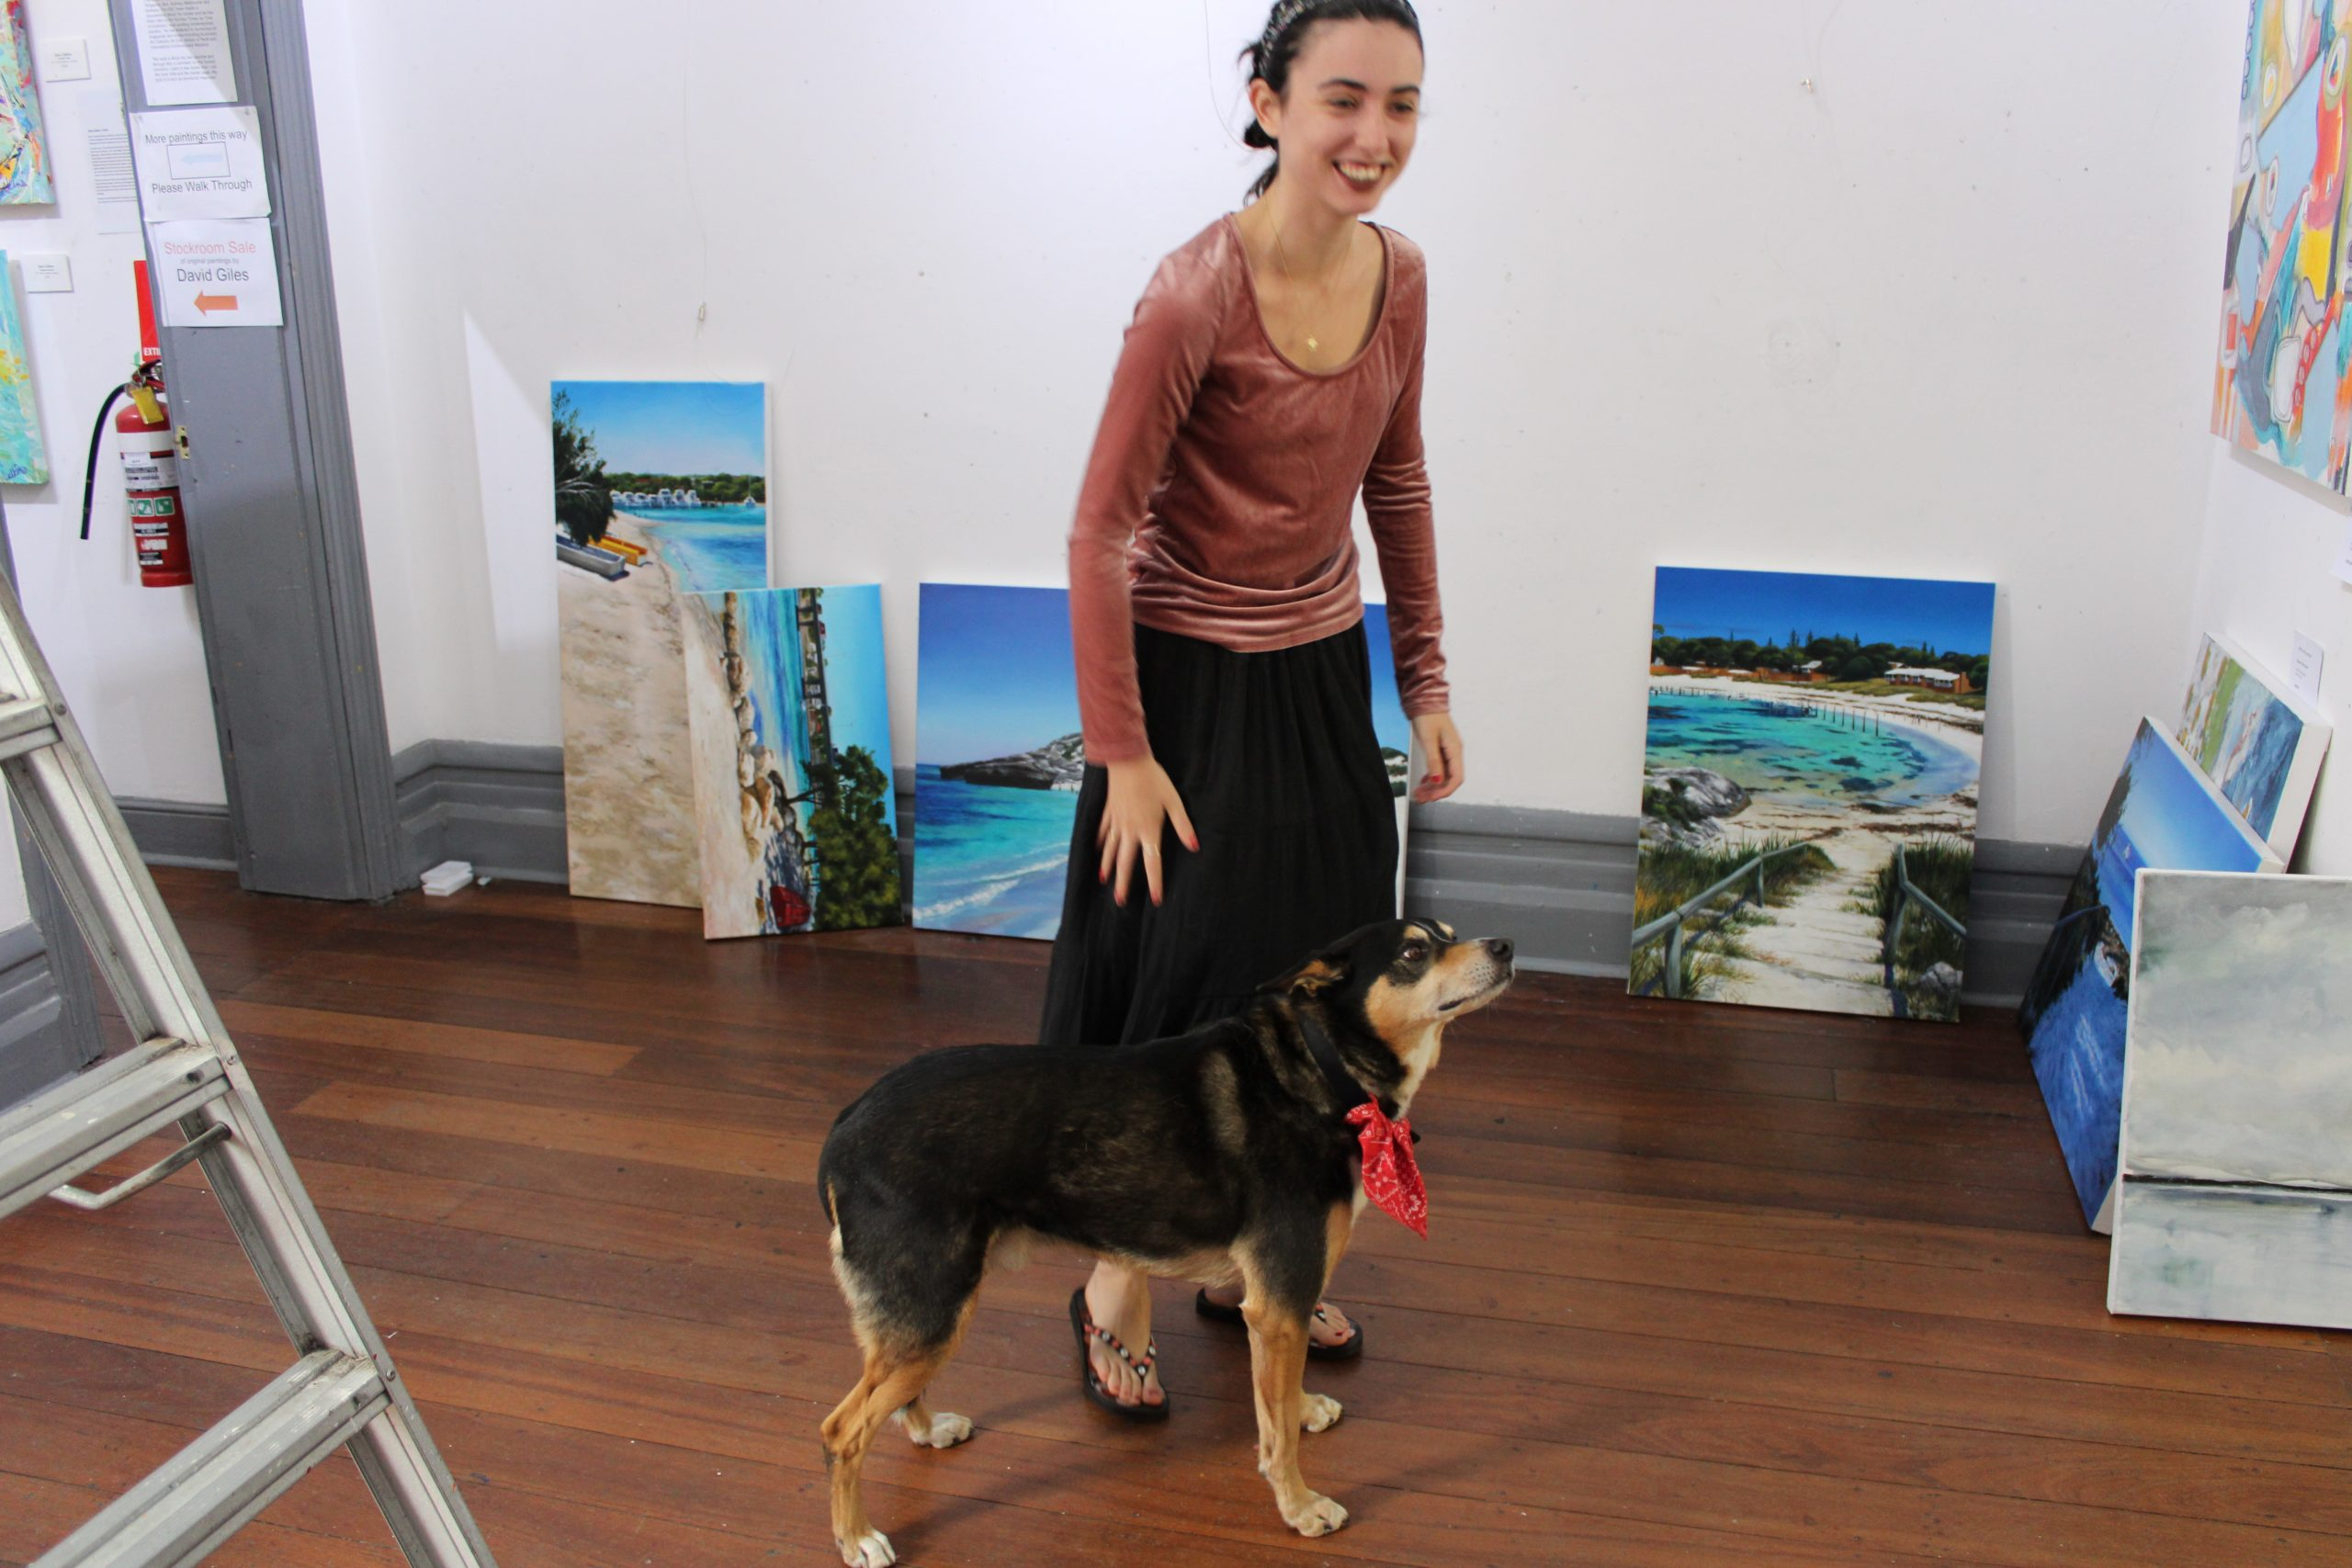 Two Gallery helpers on hanging day